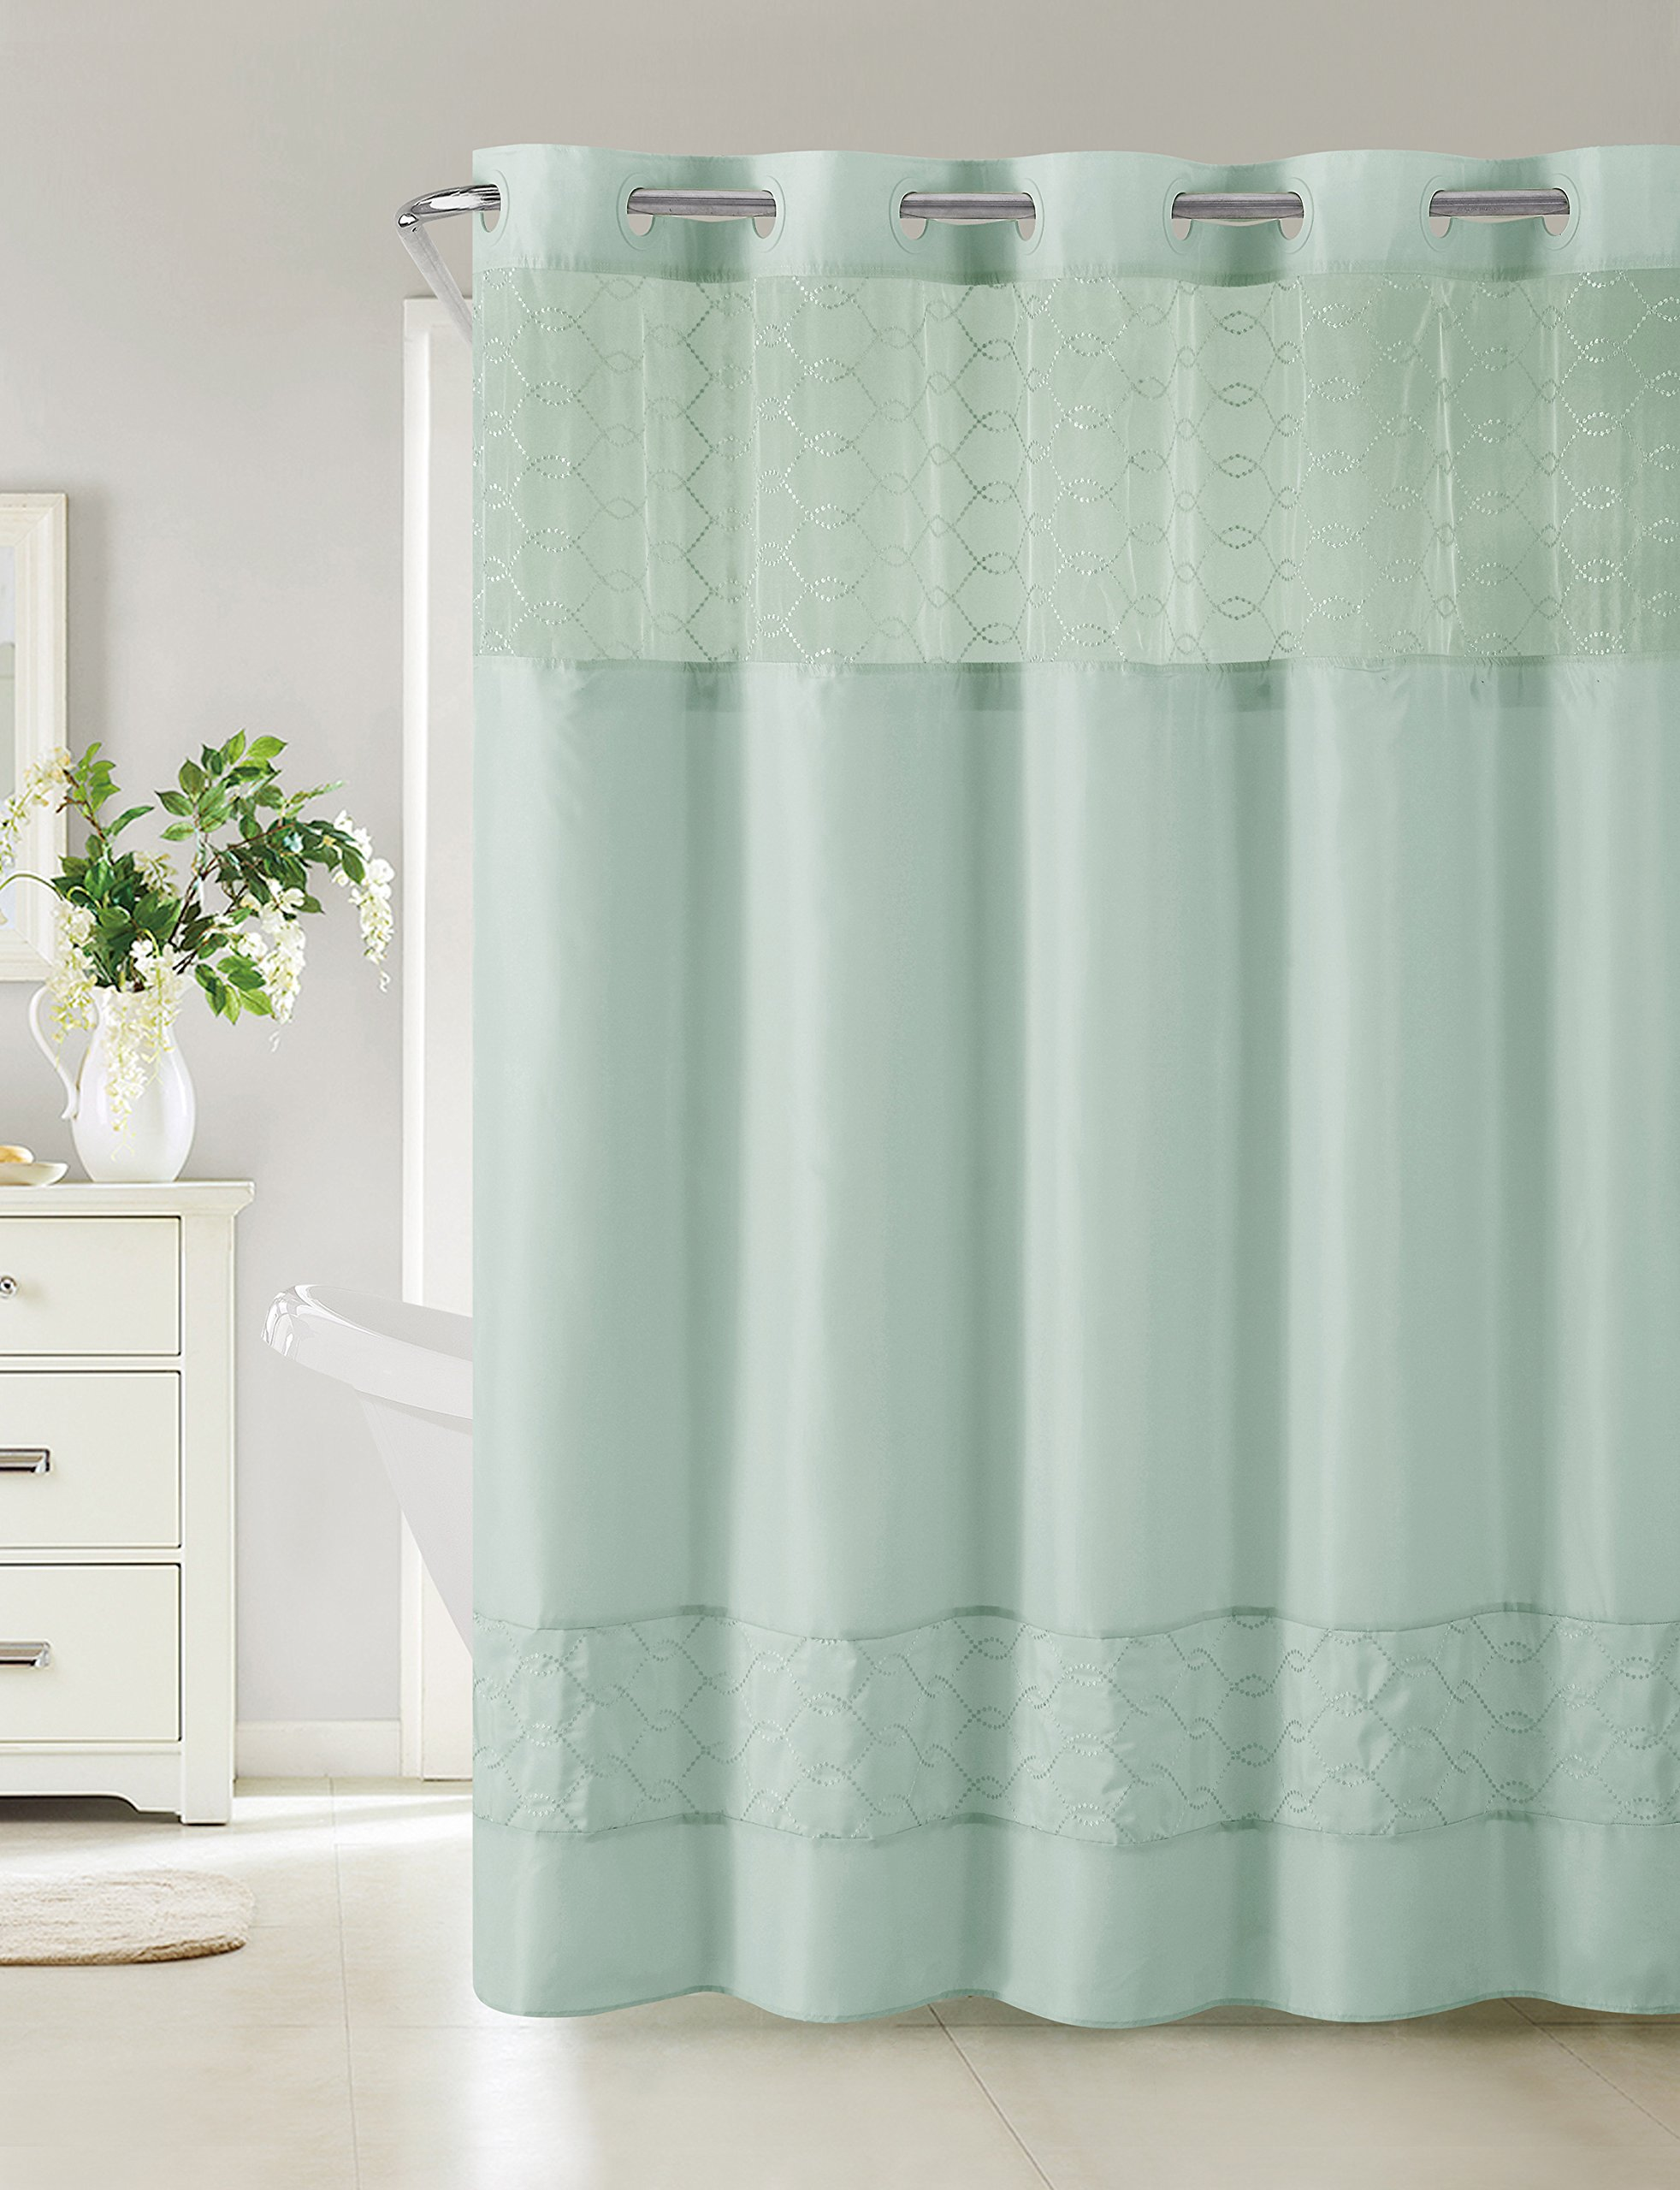 Hookless RBH40MY098 Downtown Soho Shower Curtain with Peva Liner -  Blue